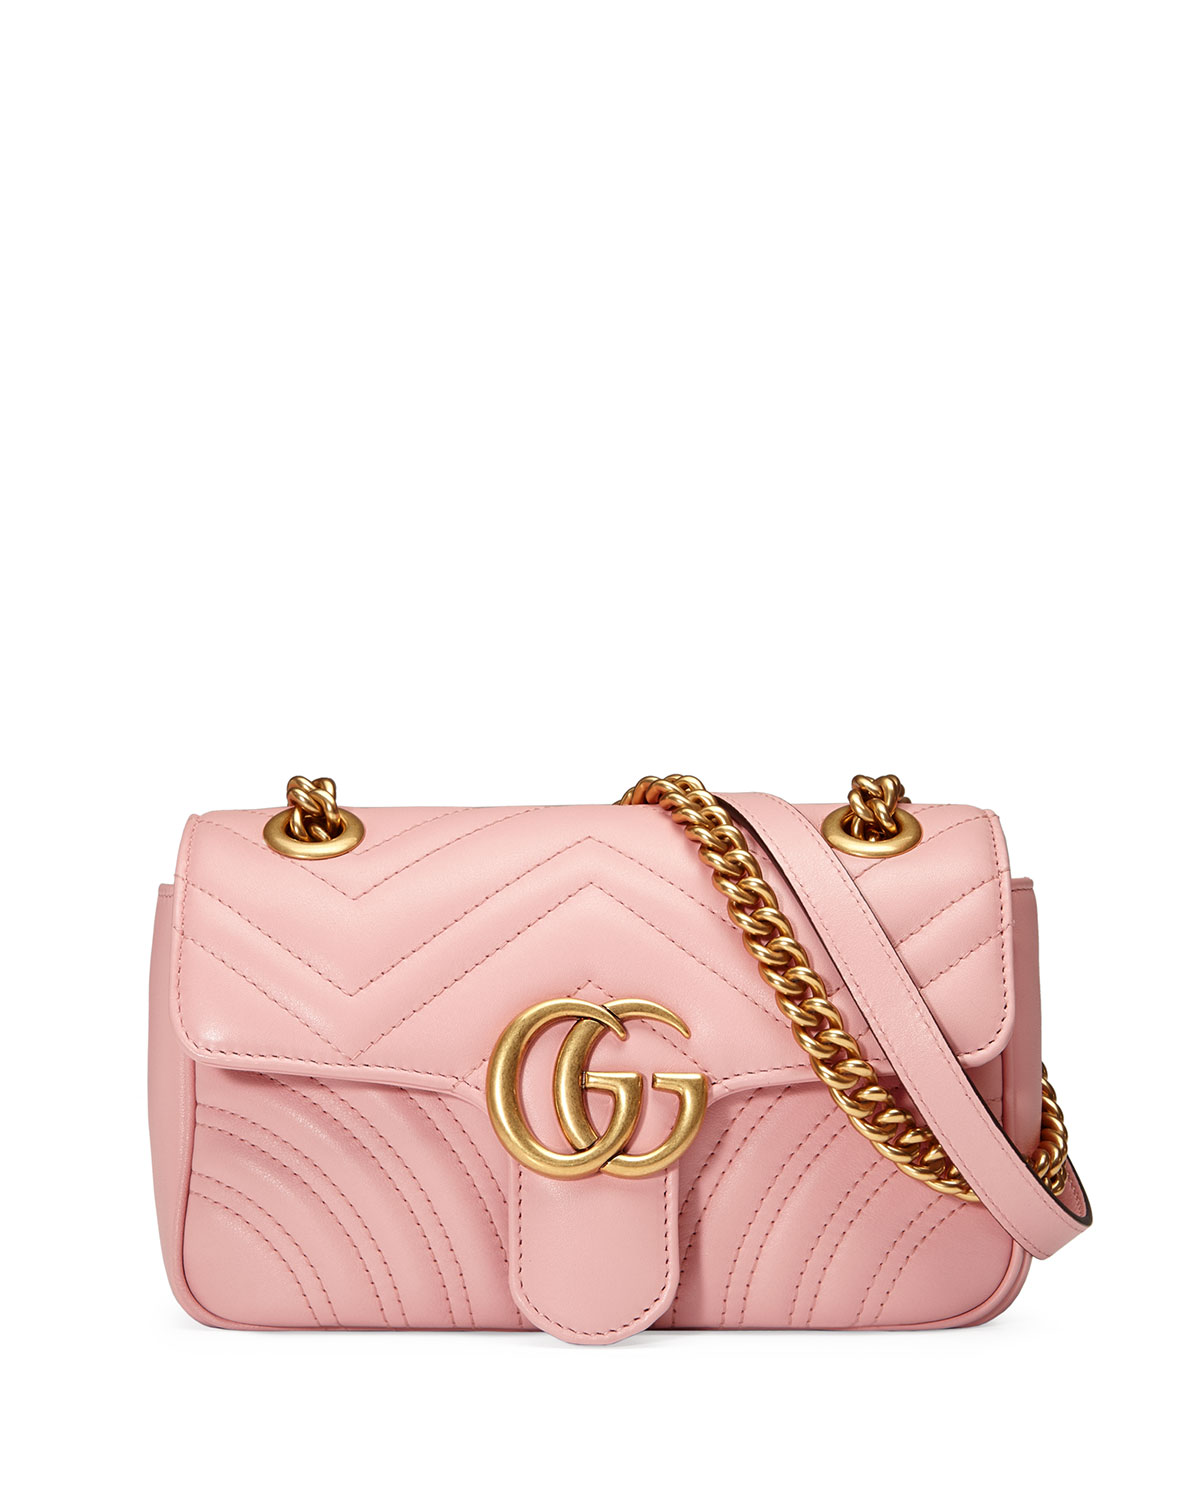 a03fc5f8094cd2 Gucci GG Marmont 2.0 Mini Quilted Leather Crossbody Bag | Neiman Marcus